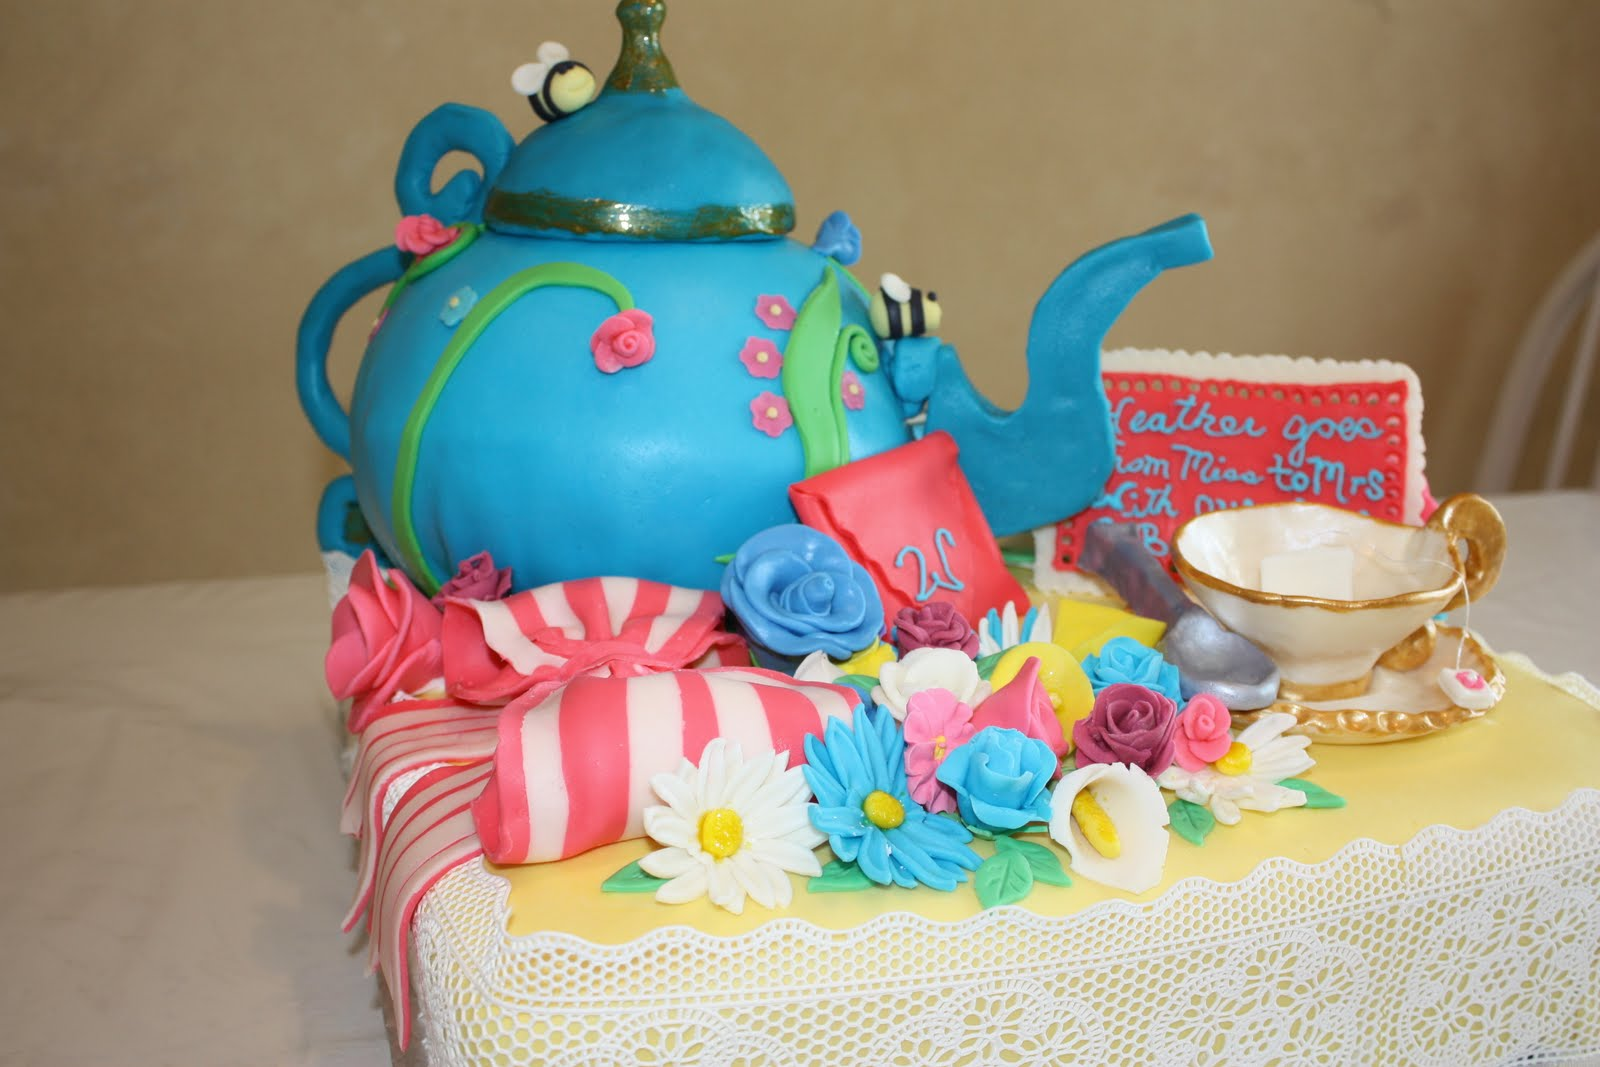 Swell Tea Party Cakes Decoration Ideas Little Birthday Cakes Personalised Birthday Cards Veneteletsinfo